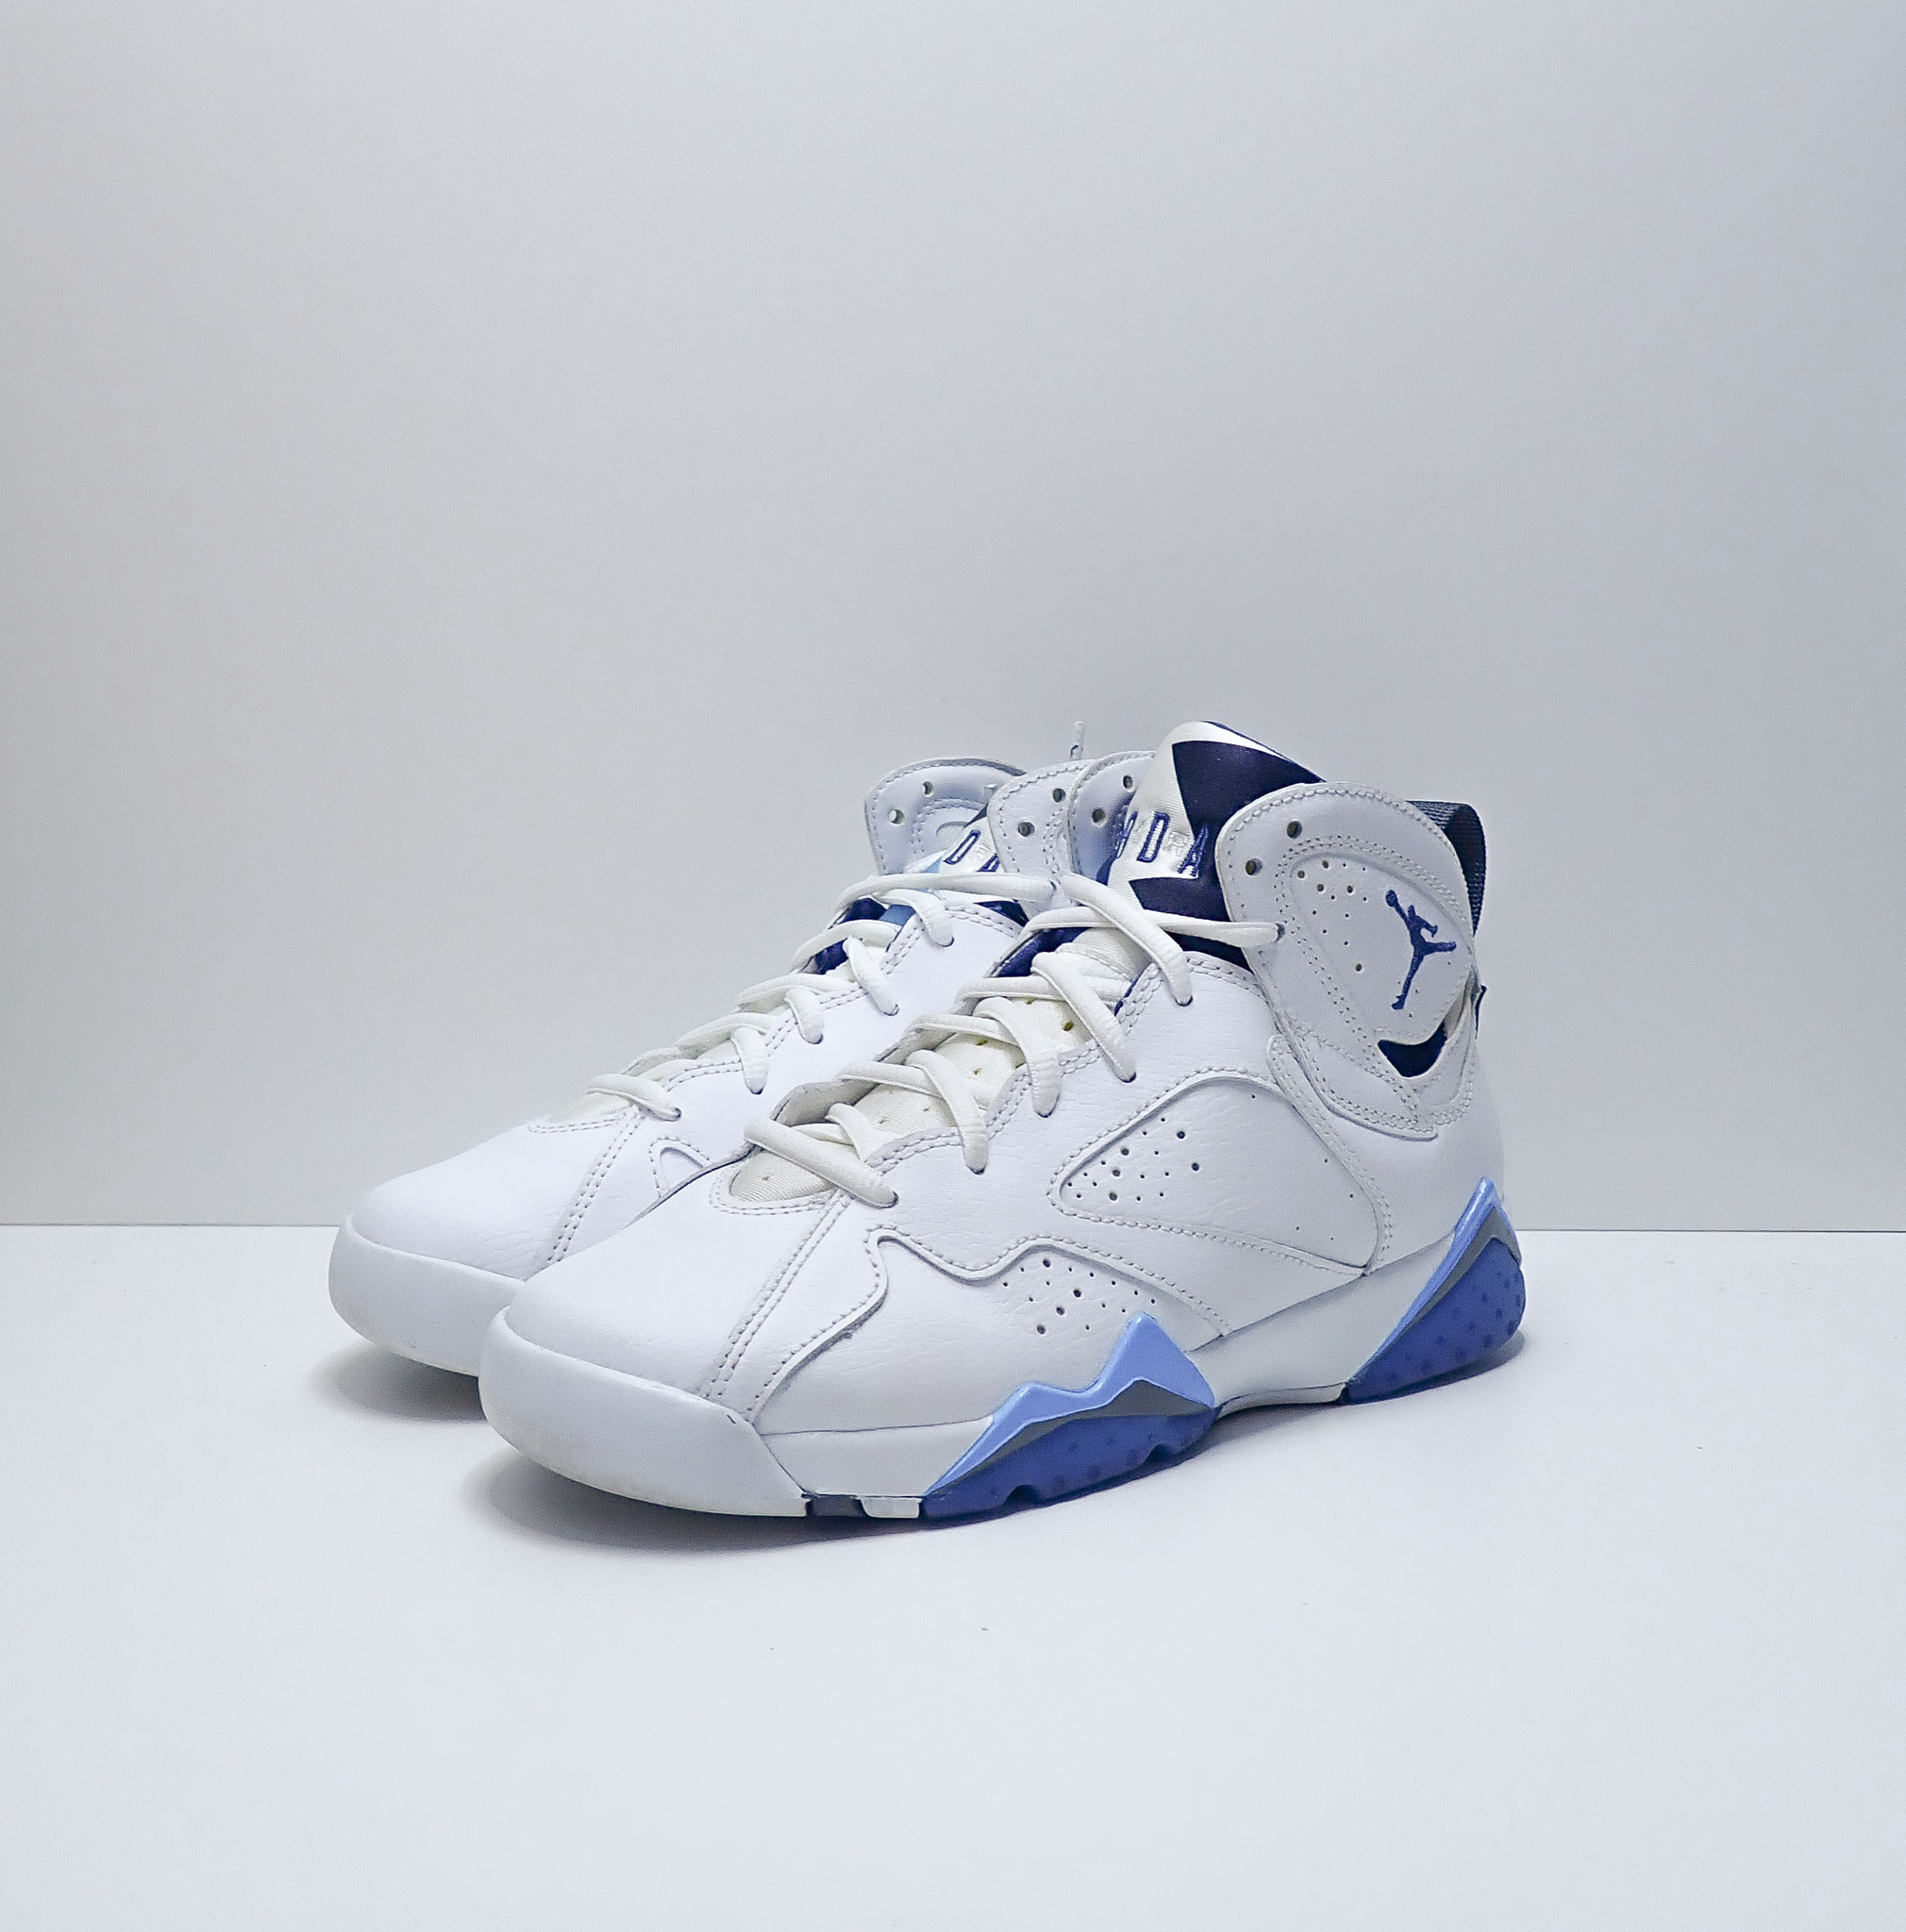 Jordan 7 Retro French Blue GS